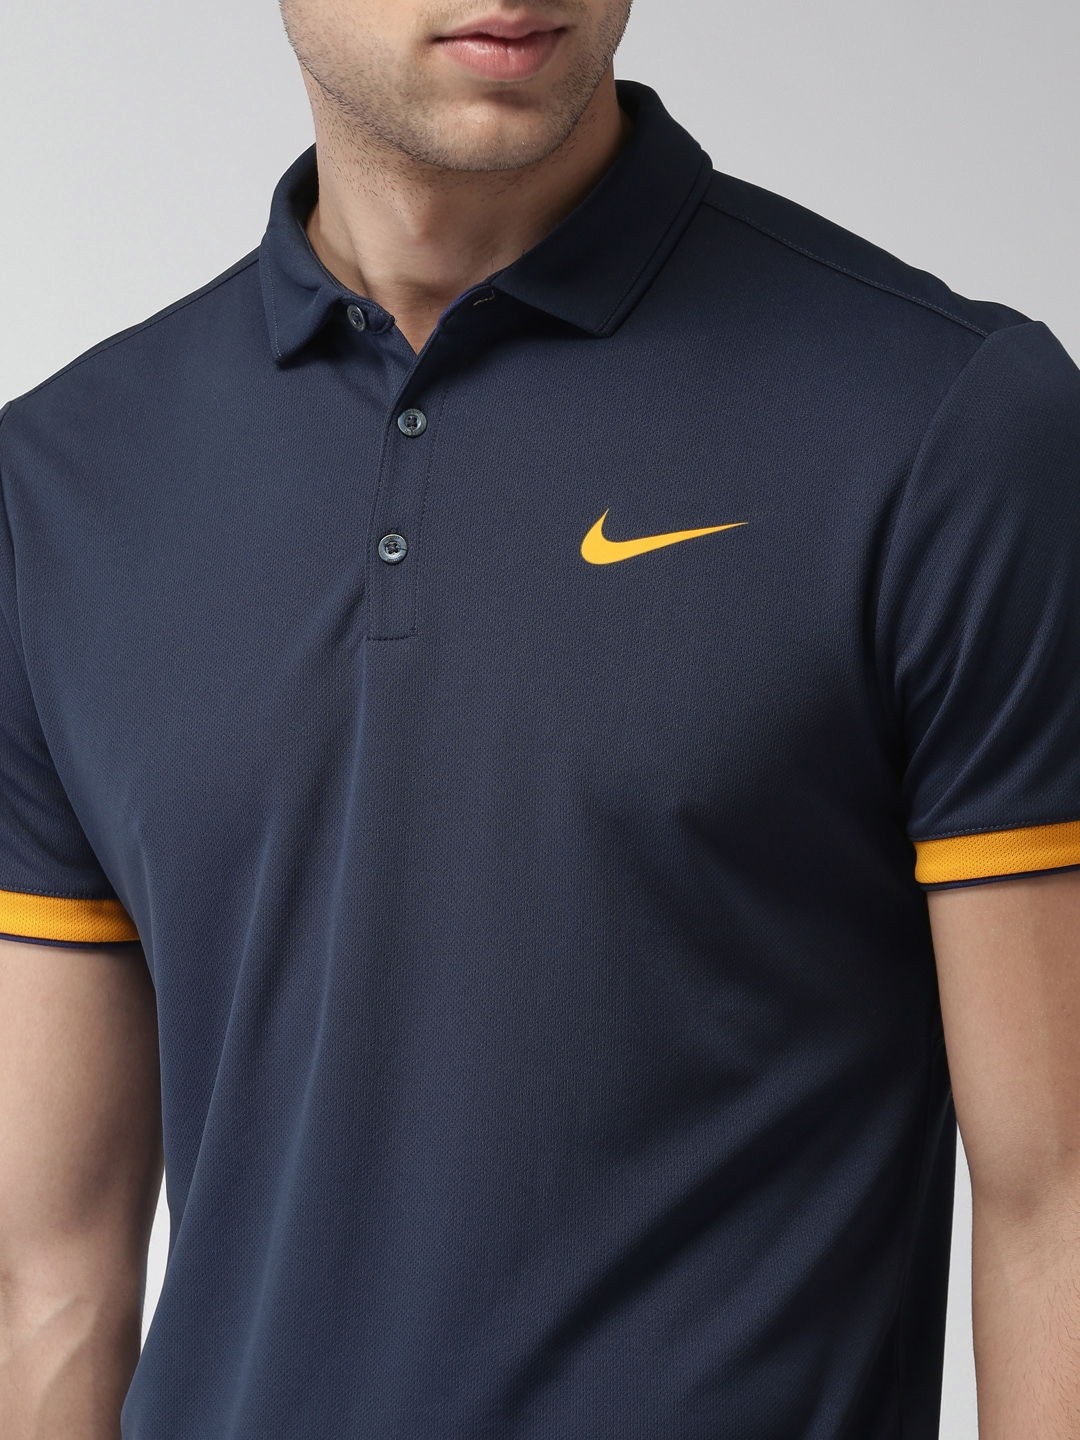 de5beac5d186 Buy Nike Men Blue Court Dry Standard Fit DRI FIT Polo T Shirt ...